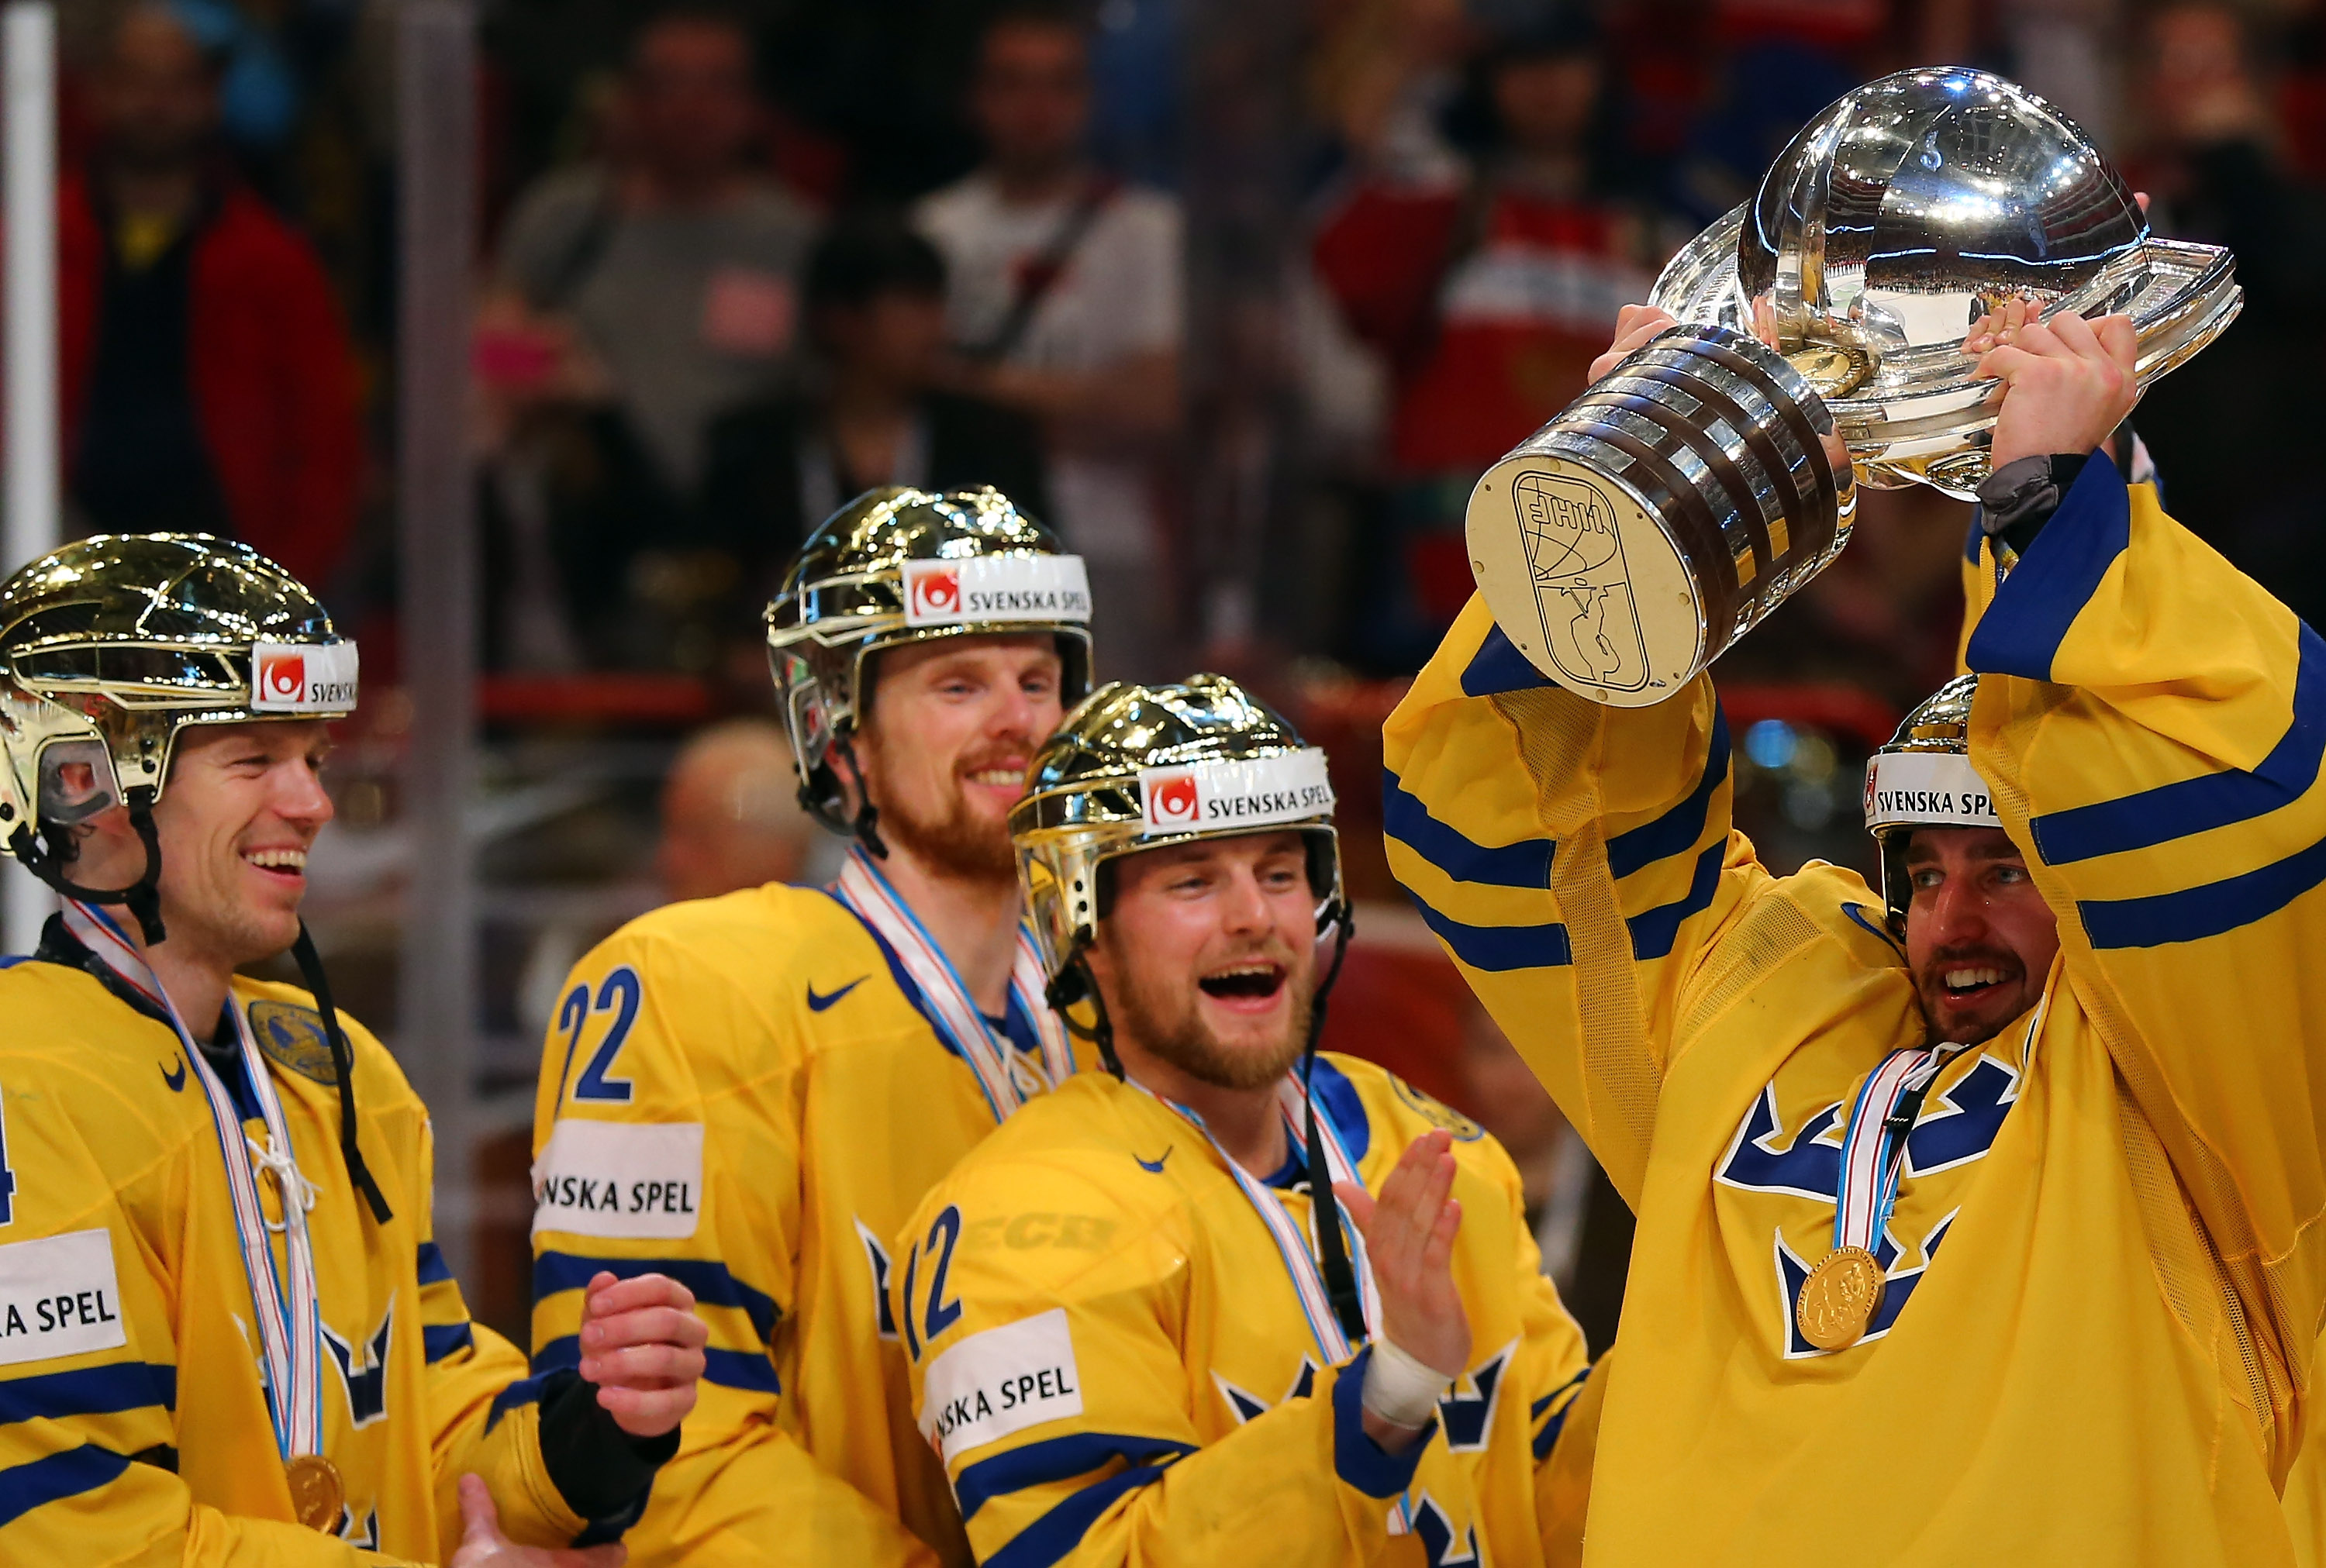 Enroth with the cup for Tre Kronor